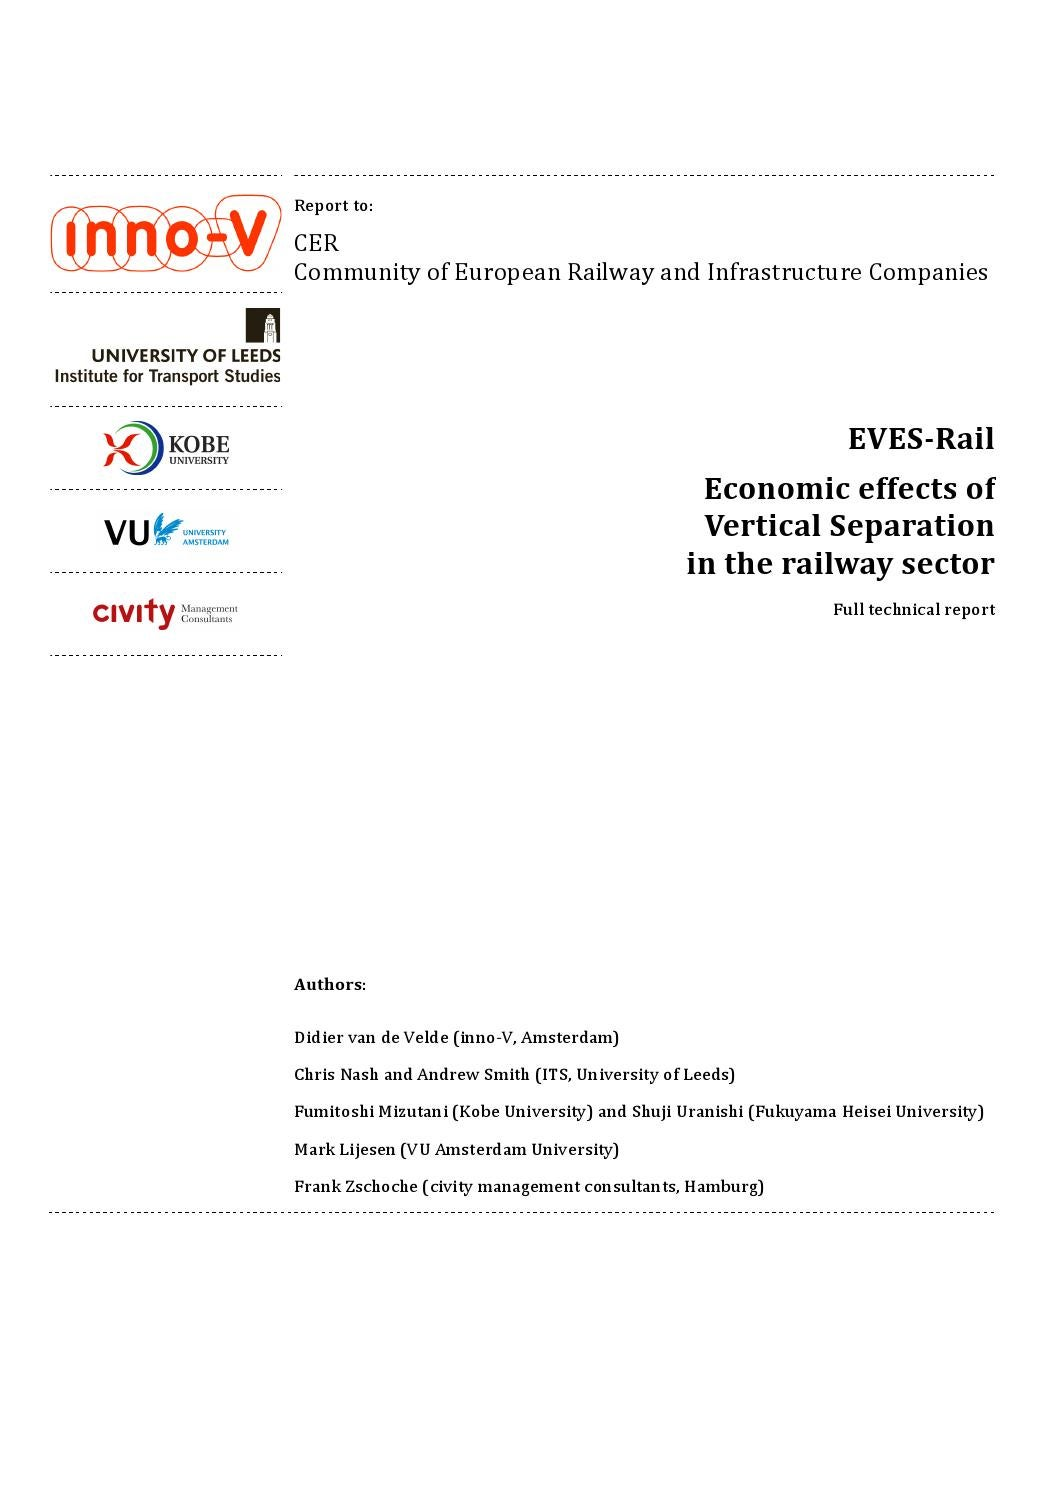 Eves Rail Study - quantitative effects on vertical separation by